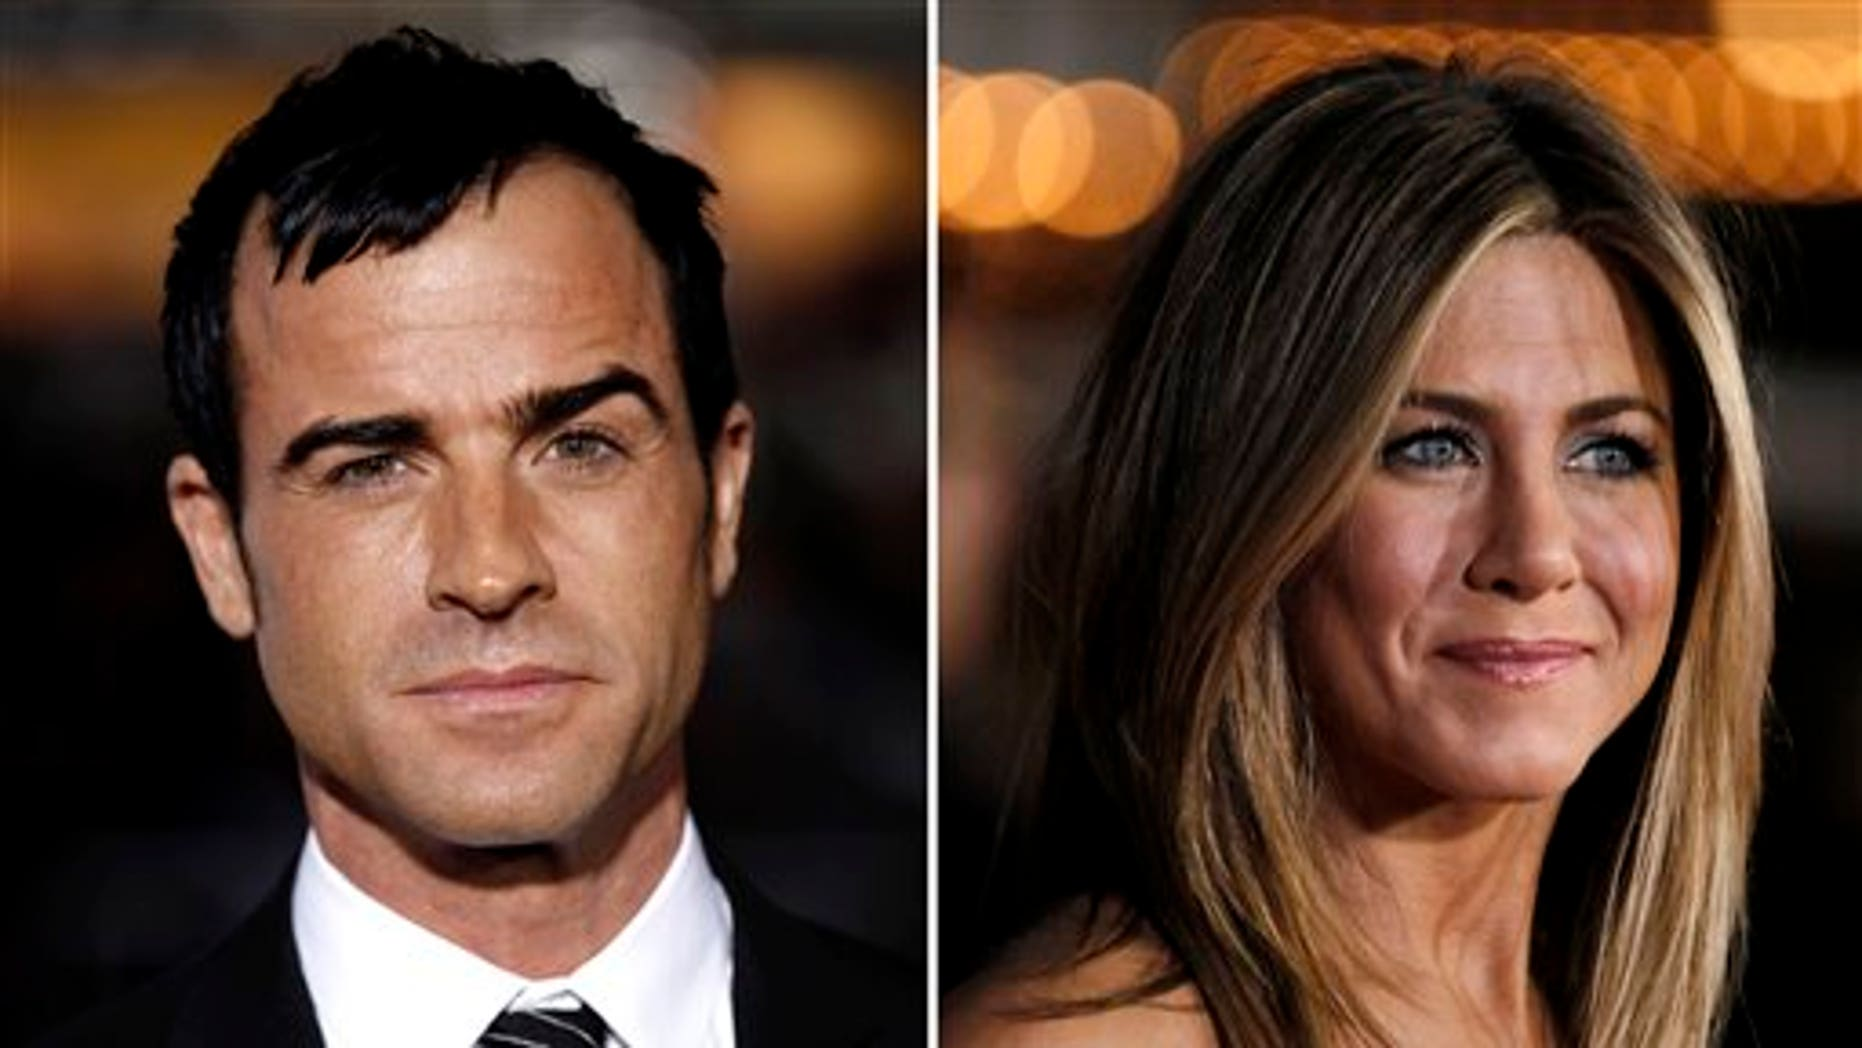 This combo made from Feb. 16, 2012 file photos shows Justin Theroux, left, and Jennifer Aniston. Aniston's rep, Stephen Huvane, on Sunday, Aug. 12, 2012 confirmed to The Associated Press that Theroux and the actress are engaged. It was first reported by People.com. (AP Photo/Matt Sayles, File)